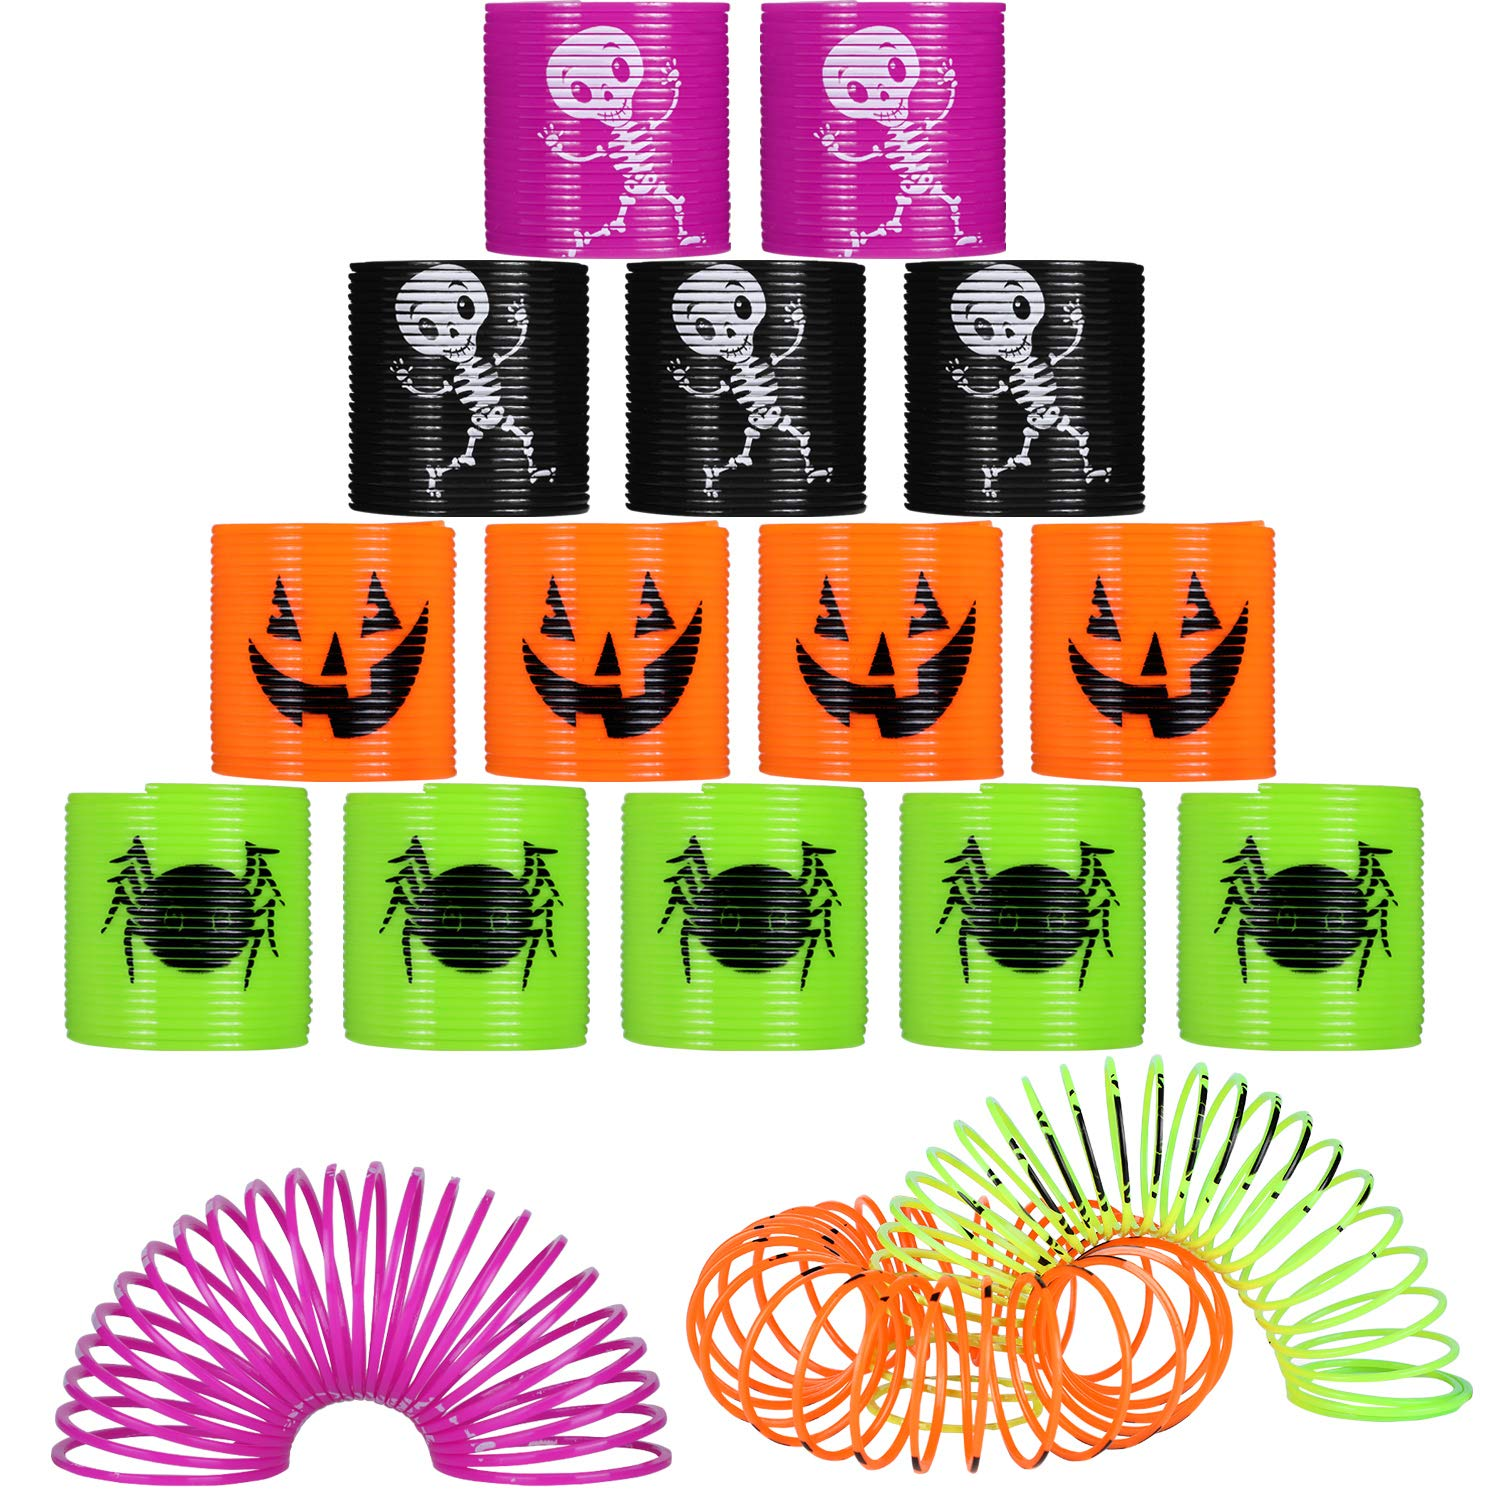 48 Pieces Mini Halloween Magic Springs Colorful Plastic Springs Pumpkin Skeleton Spider Print Toys for Party Supplies by Gejoy